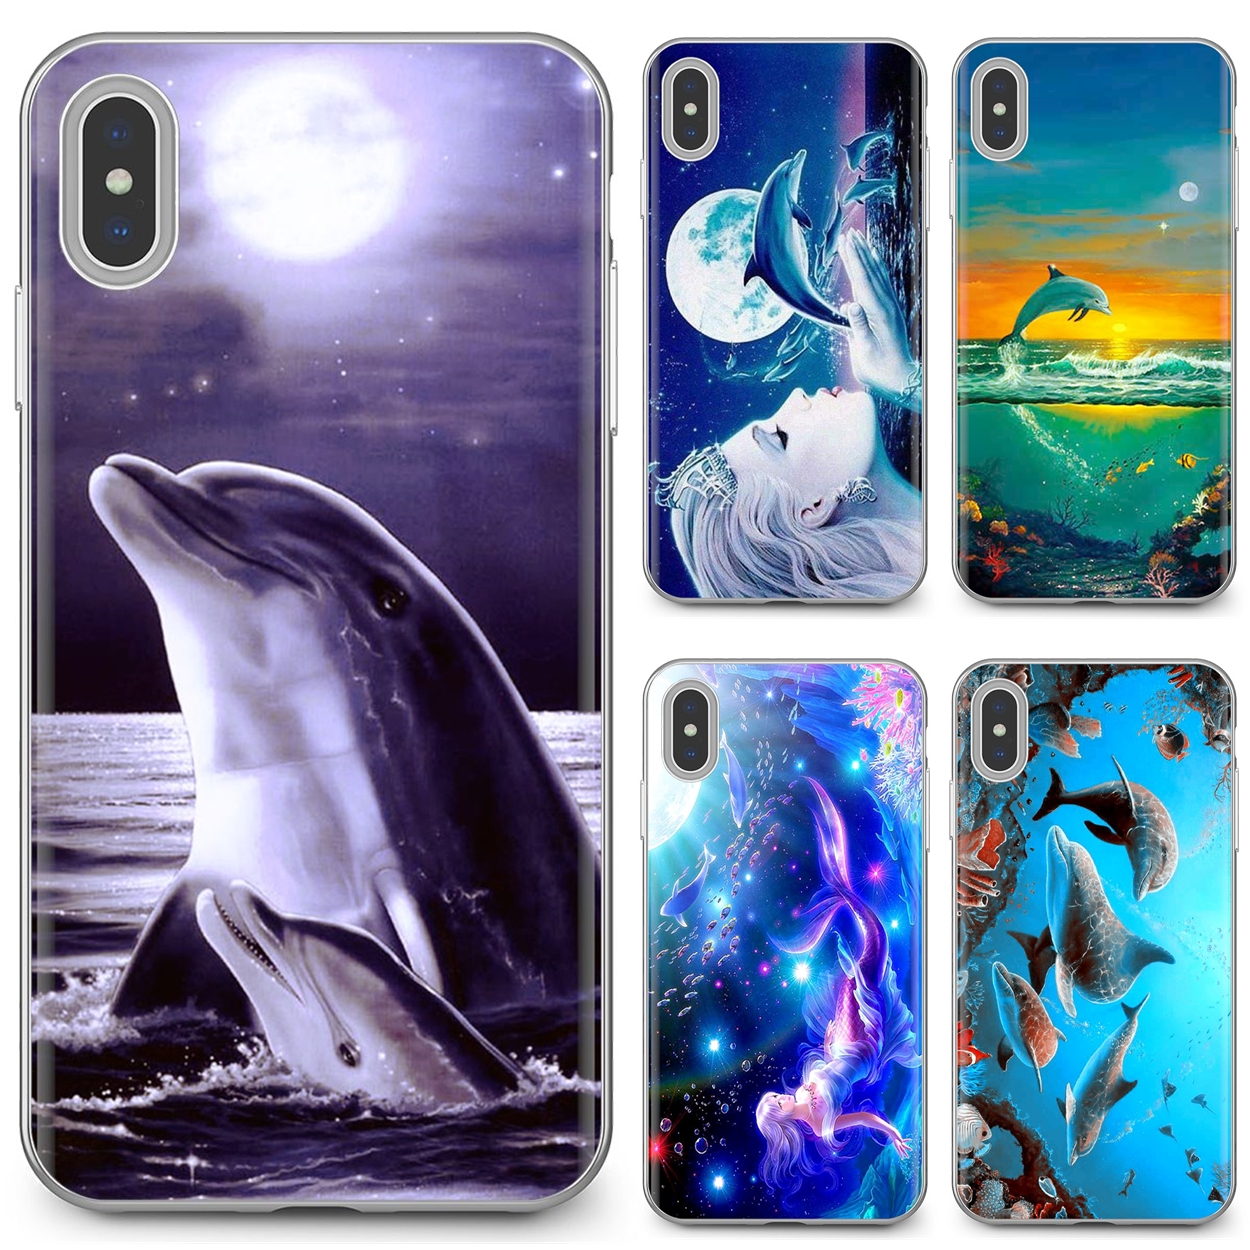 For Samsung Galaxy A3 A5 A7 A9 A8 Star Lite A6 Plus 2018 2015 2016 2017 Buy Silicone Phone Case Dance And Jumping dolphins Water(China)